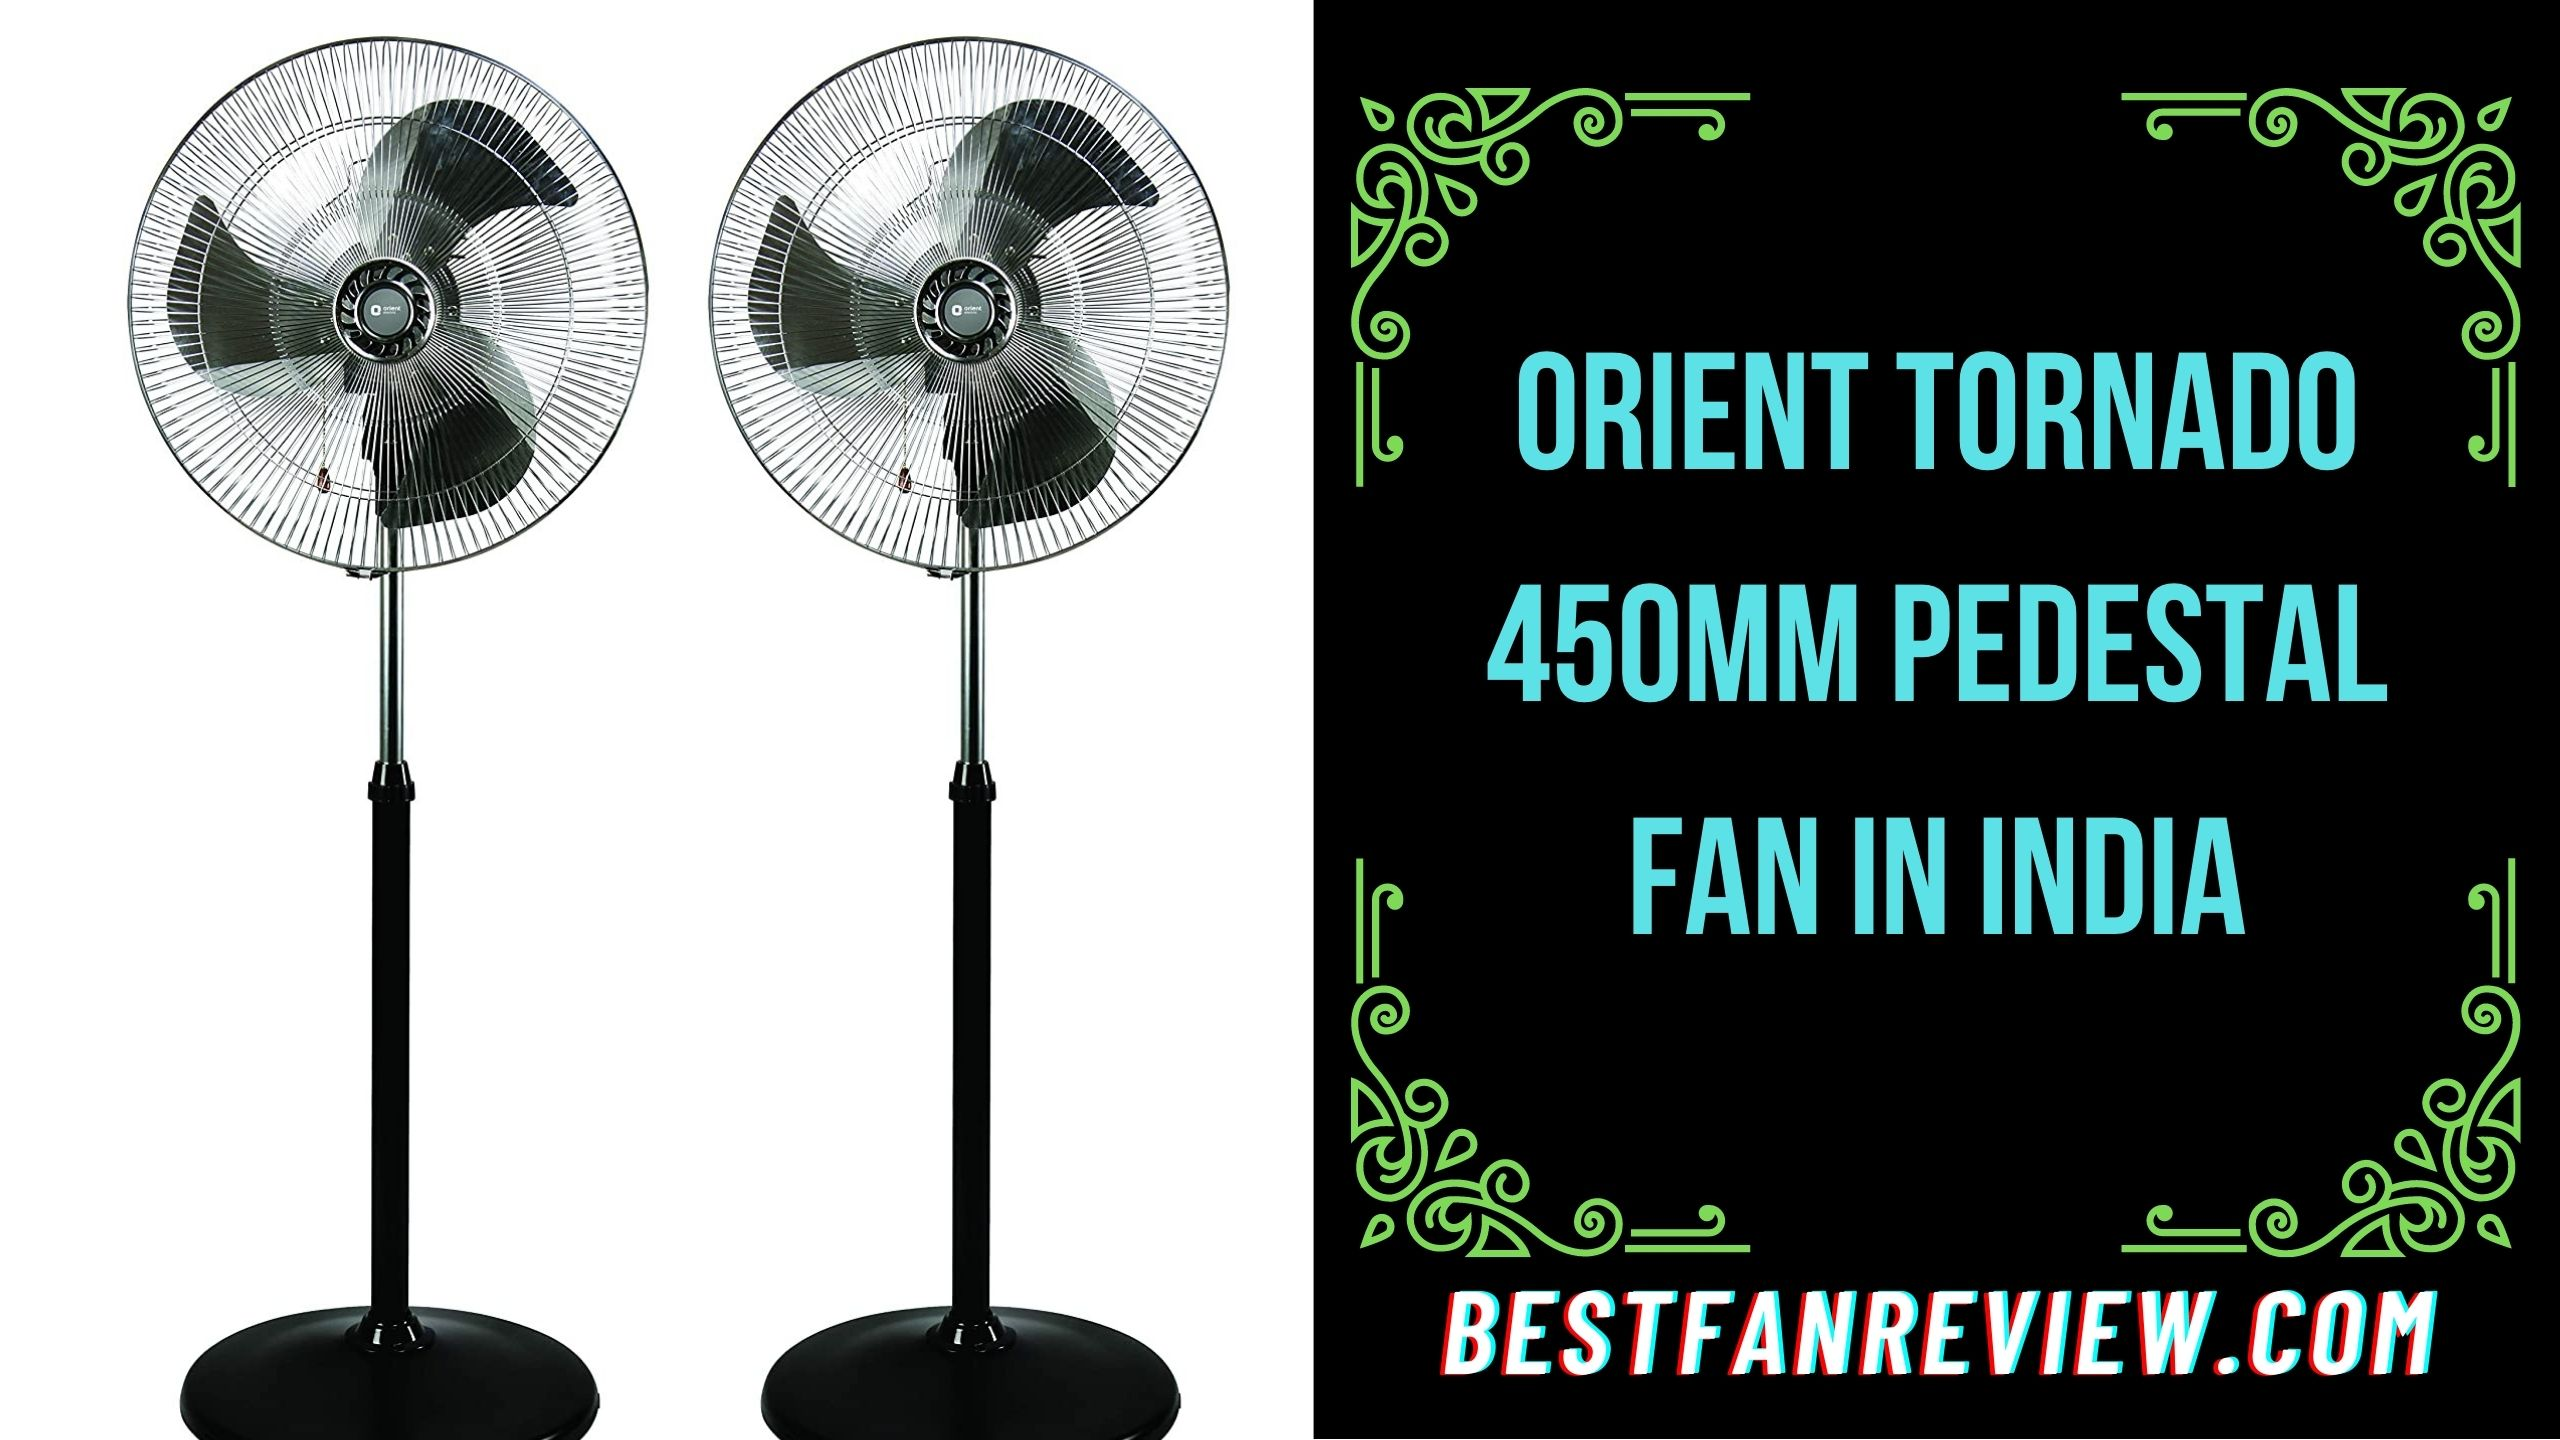 Orient Tornado 450mm Pedestal Fan in india